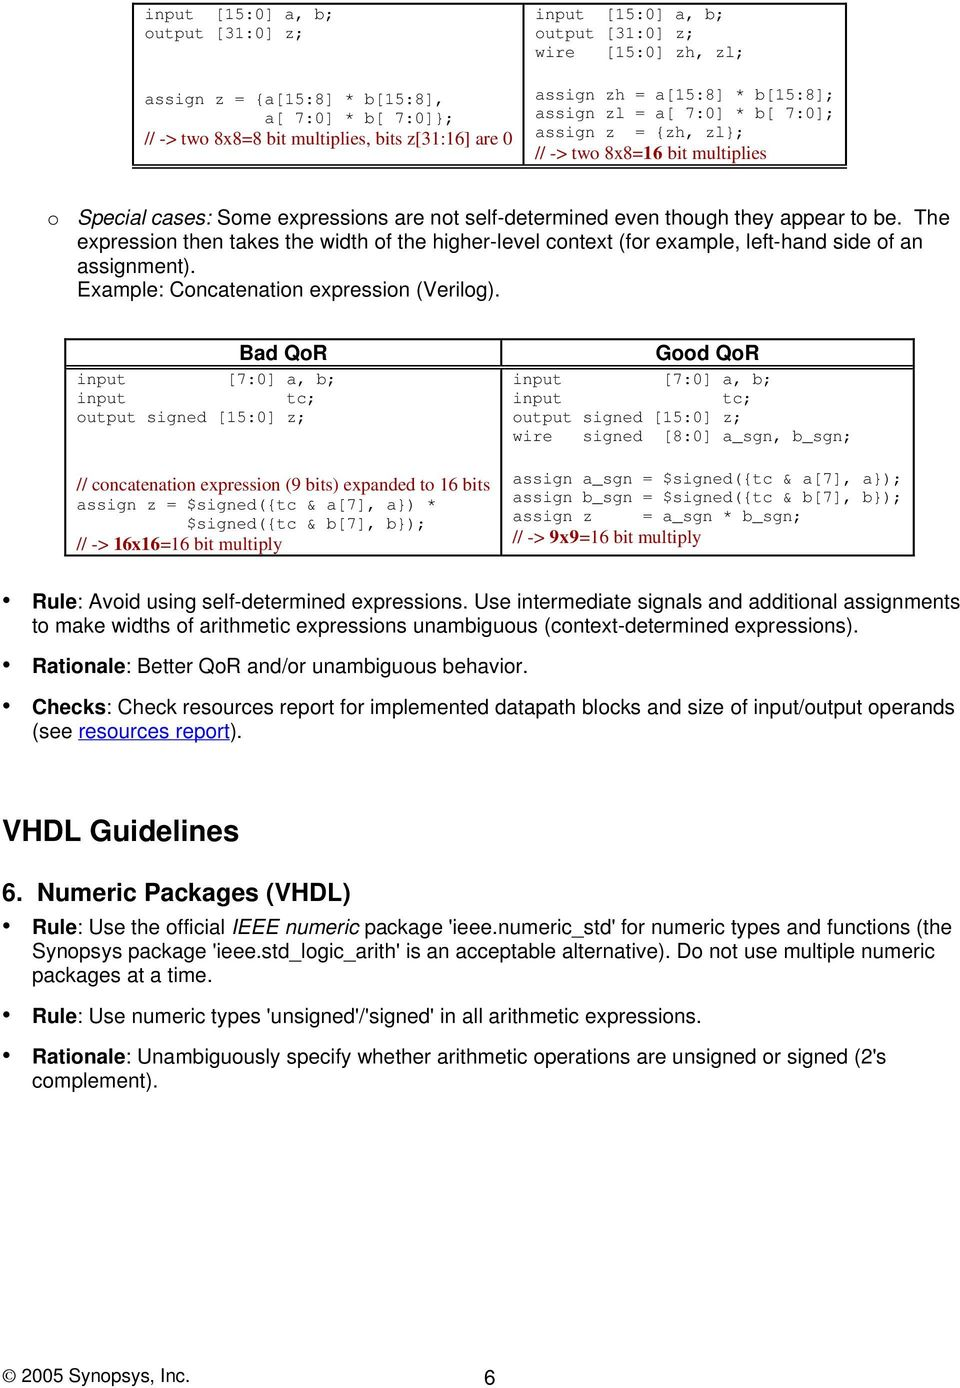 Coding Guidelines for Datapath Synthesis - PDF Free Download